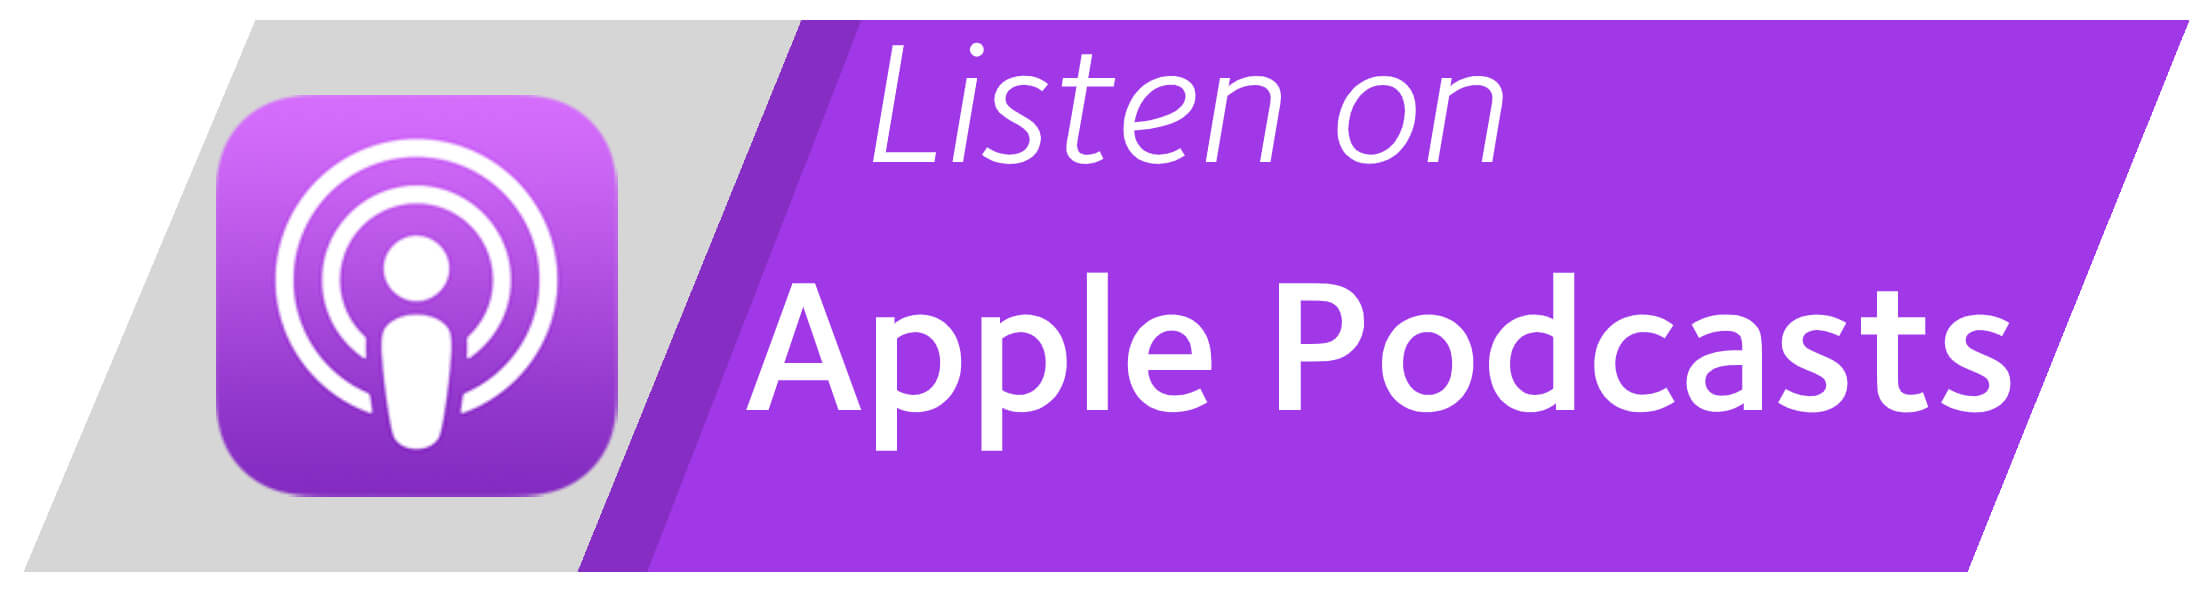 Podcast for Entrepreneurs on Apple Podcasts